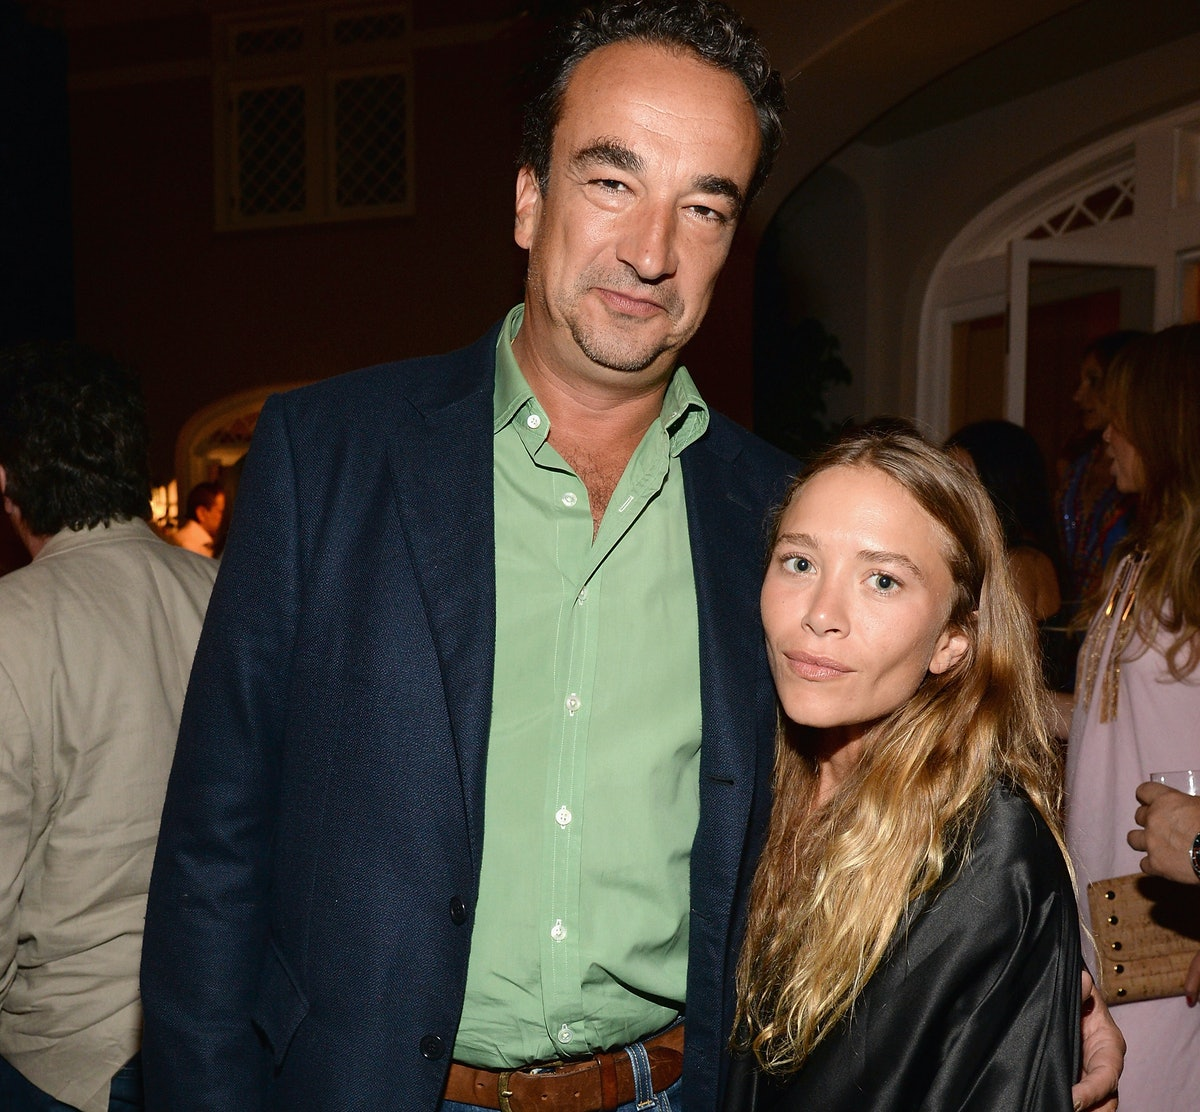 Mary Kate Olsen and Oliver Sarkozy's relationship timeline includes rare public outings.